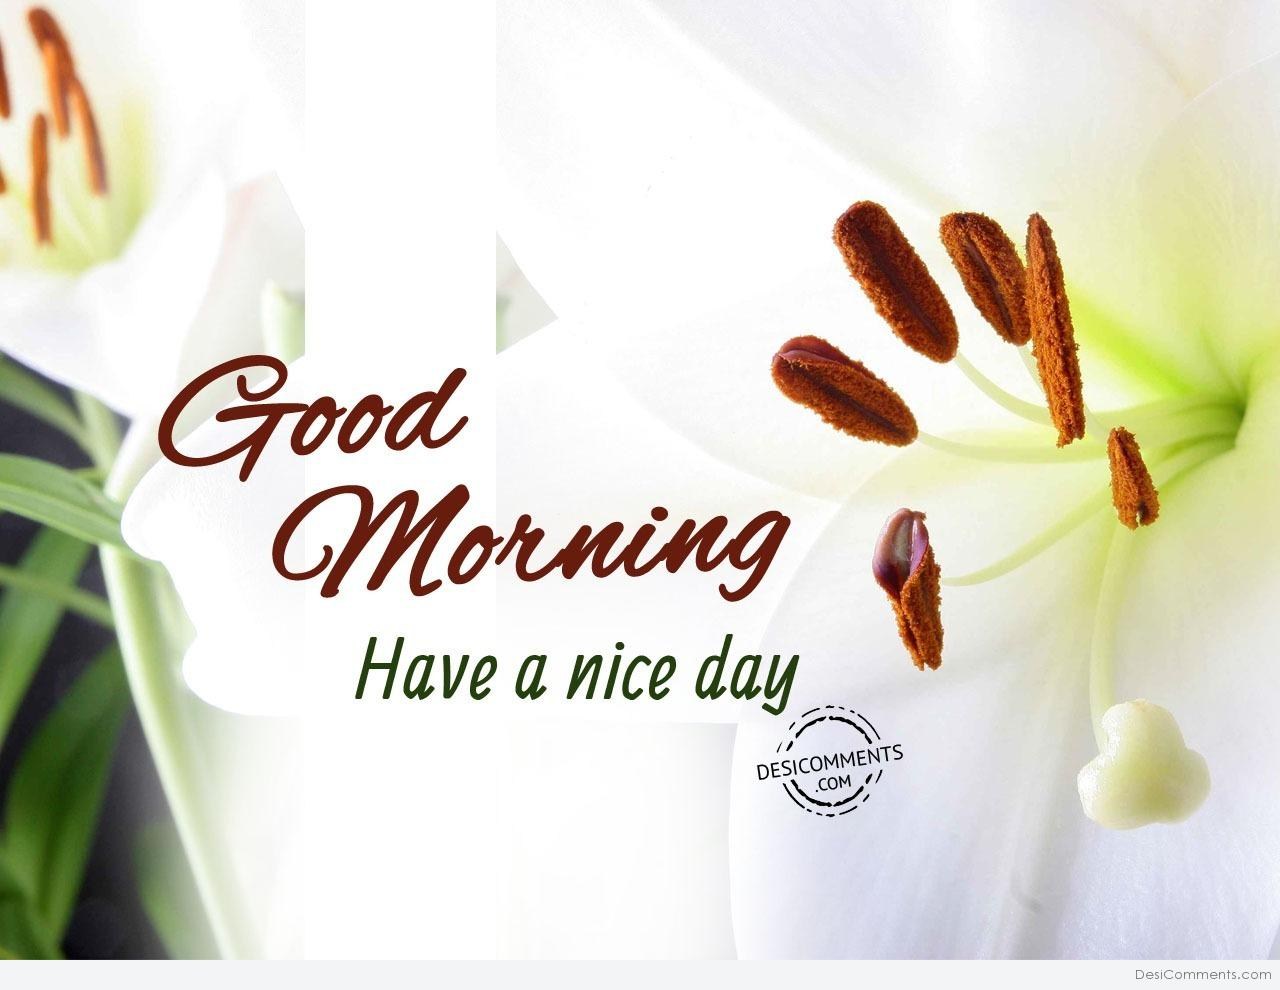 Good Morning Have A Great Day : Good morning have a nice day desicomments